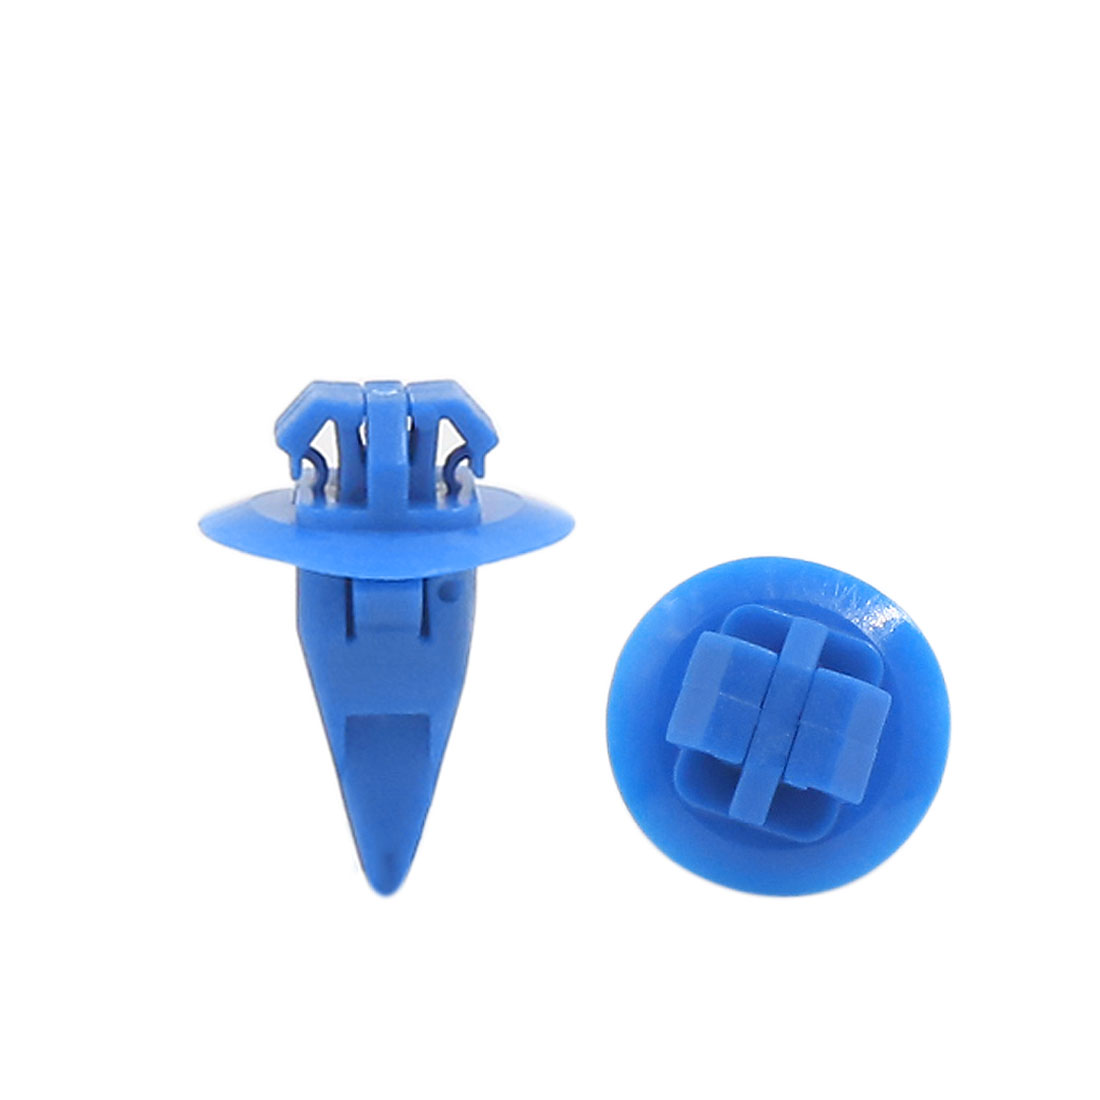 100pcs 8 x 10mm Hole Size Fender Wheel Flare Moulding Clip Retainer Fastener Blue for Toyota